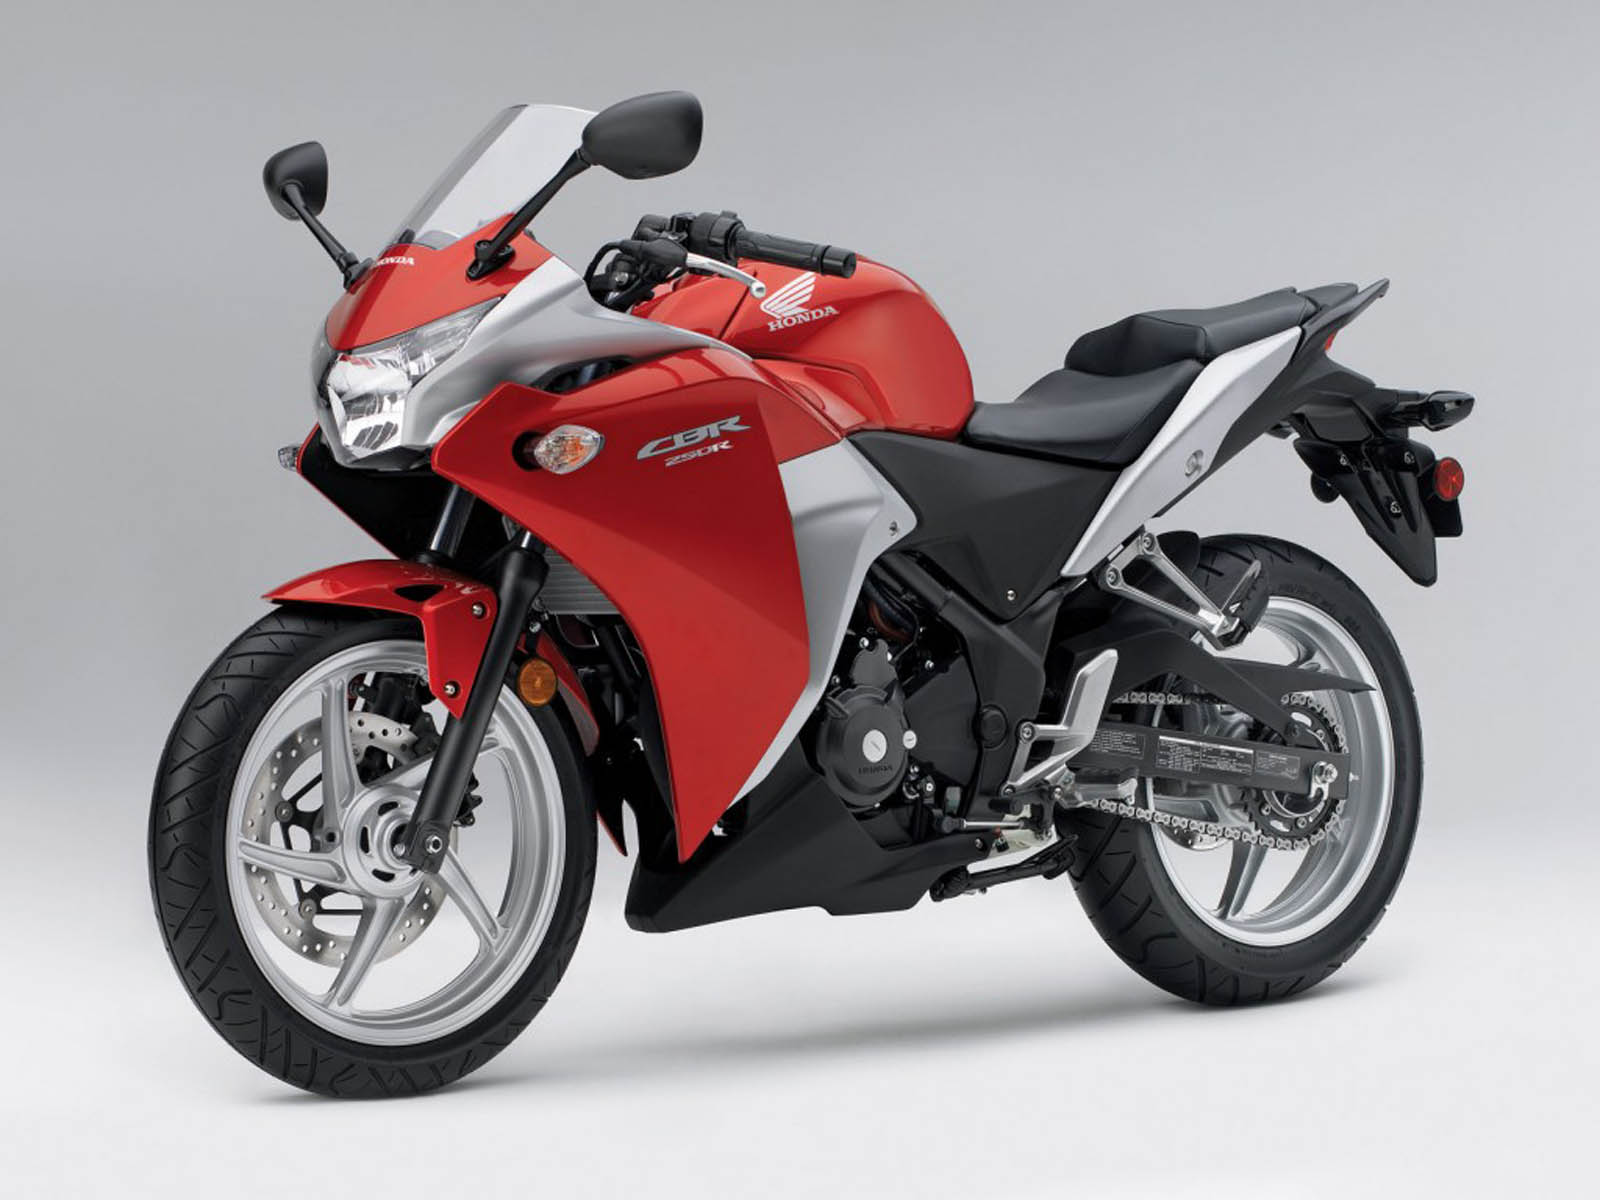 Wallpapers Honda Cbr 250r Bike Wallpapers